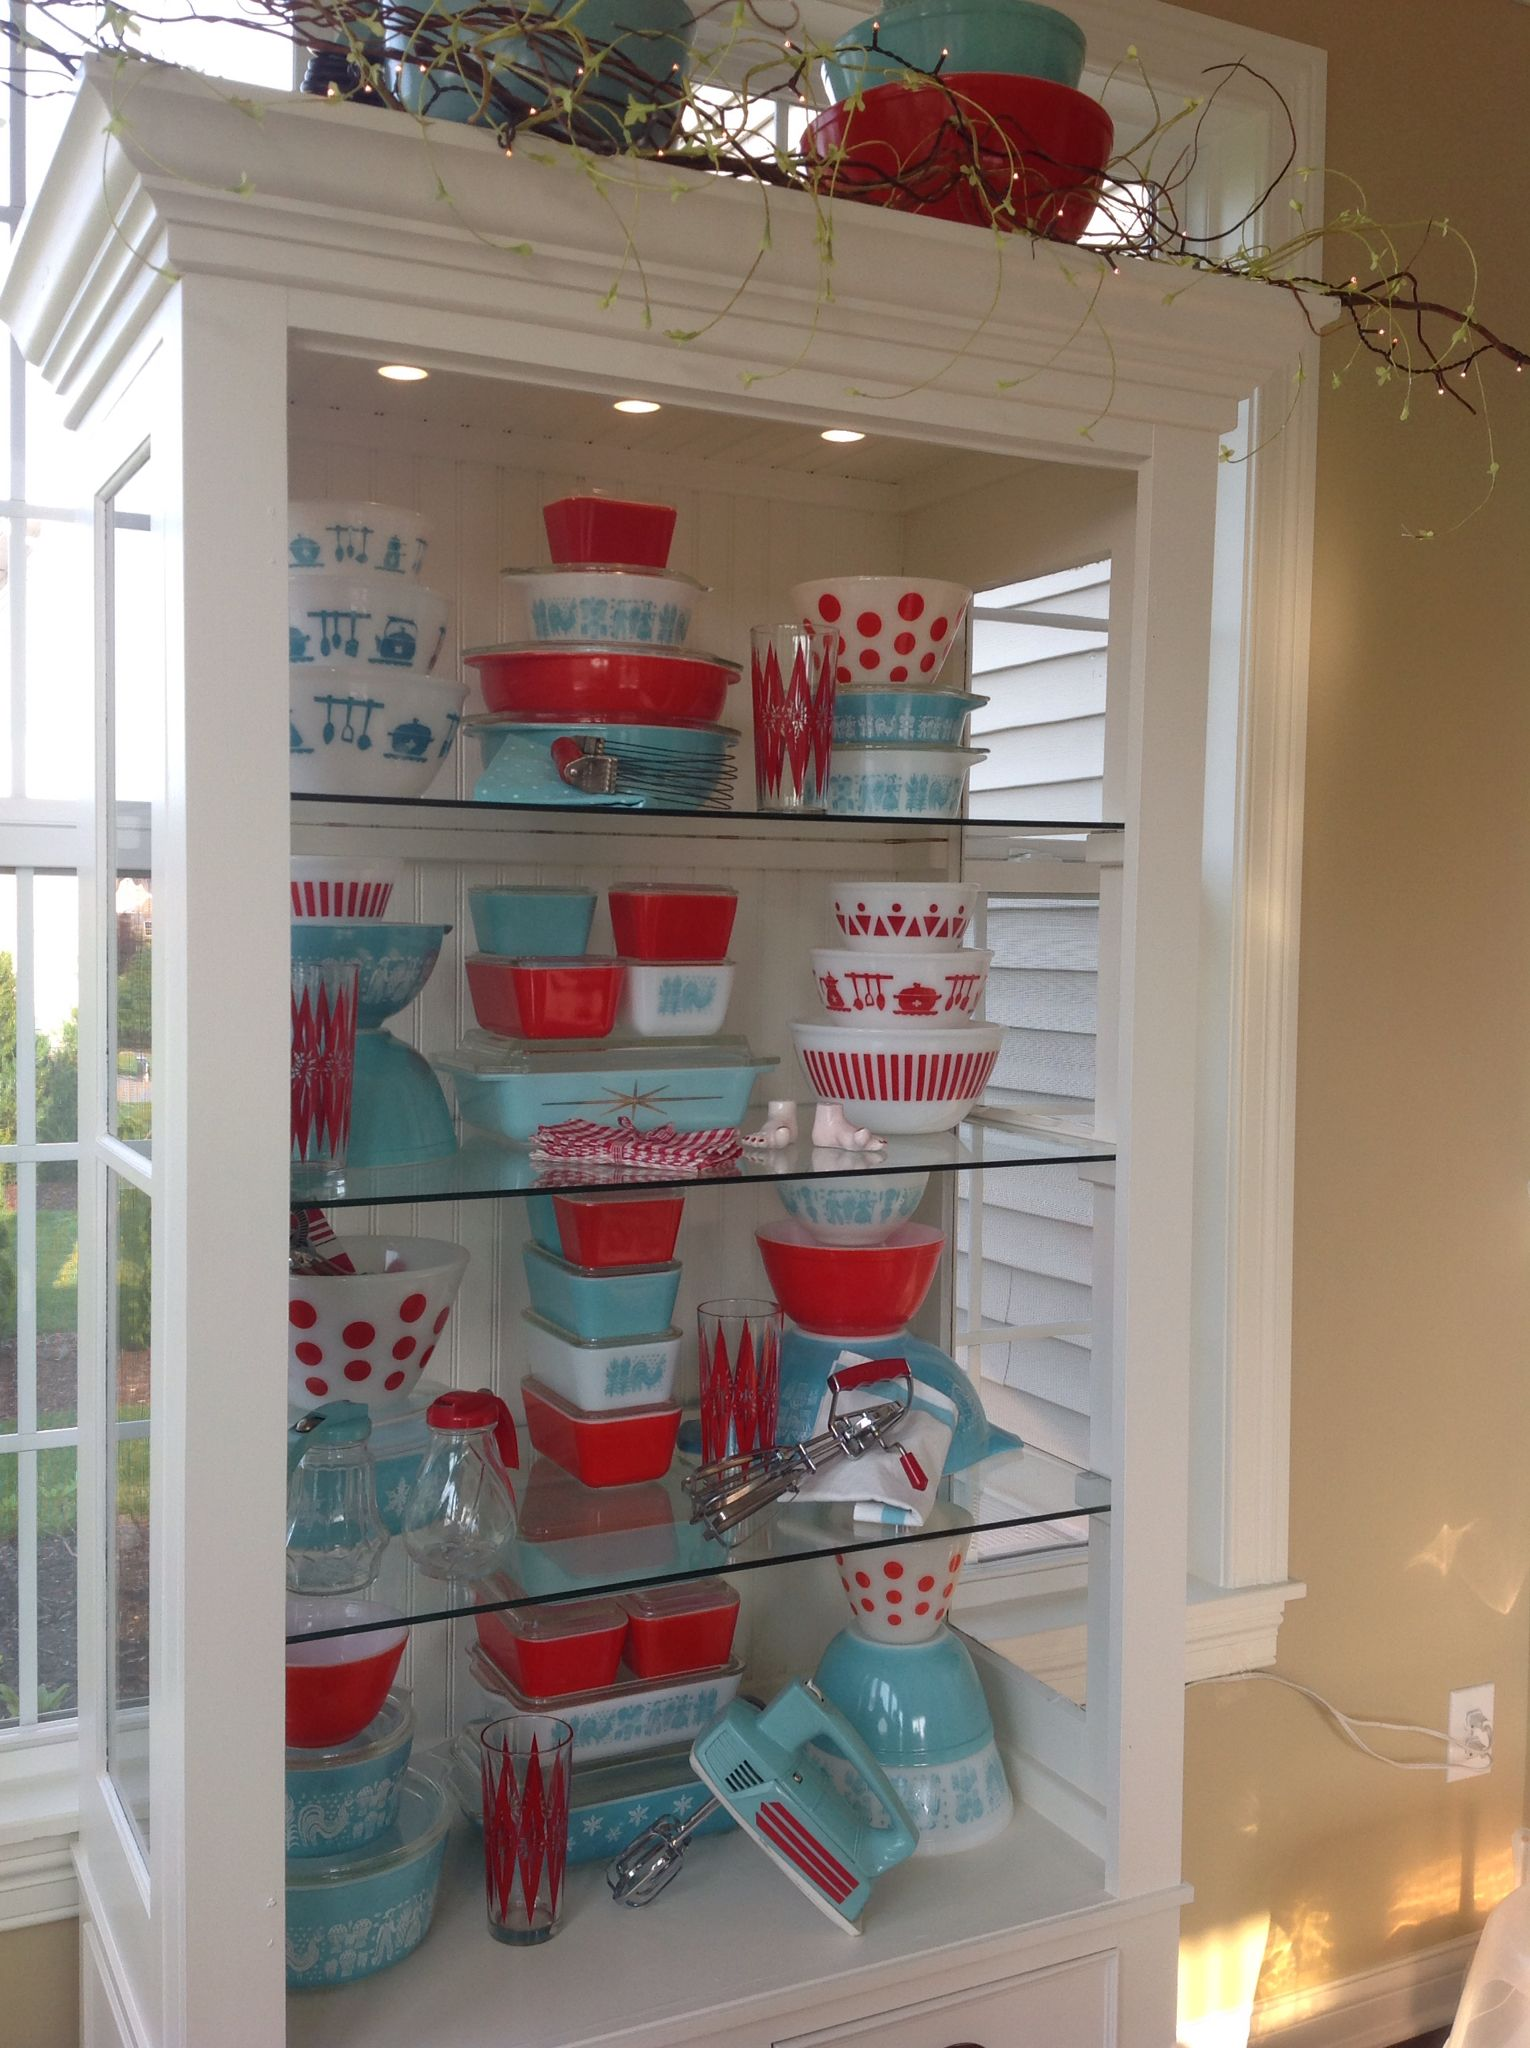 Red and turquoise Pyrex